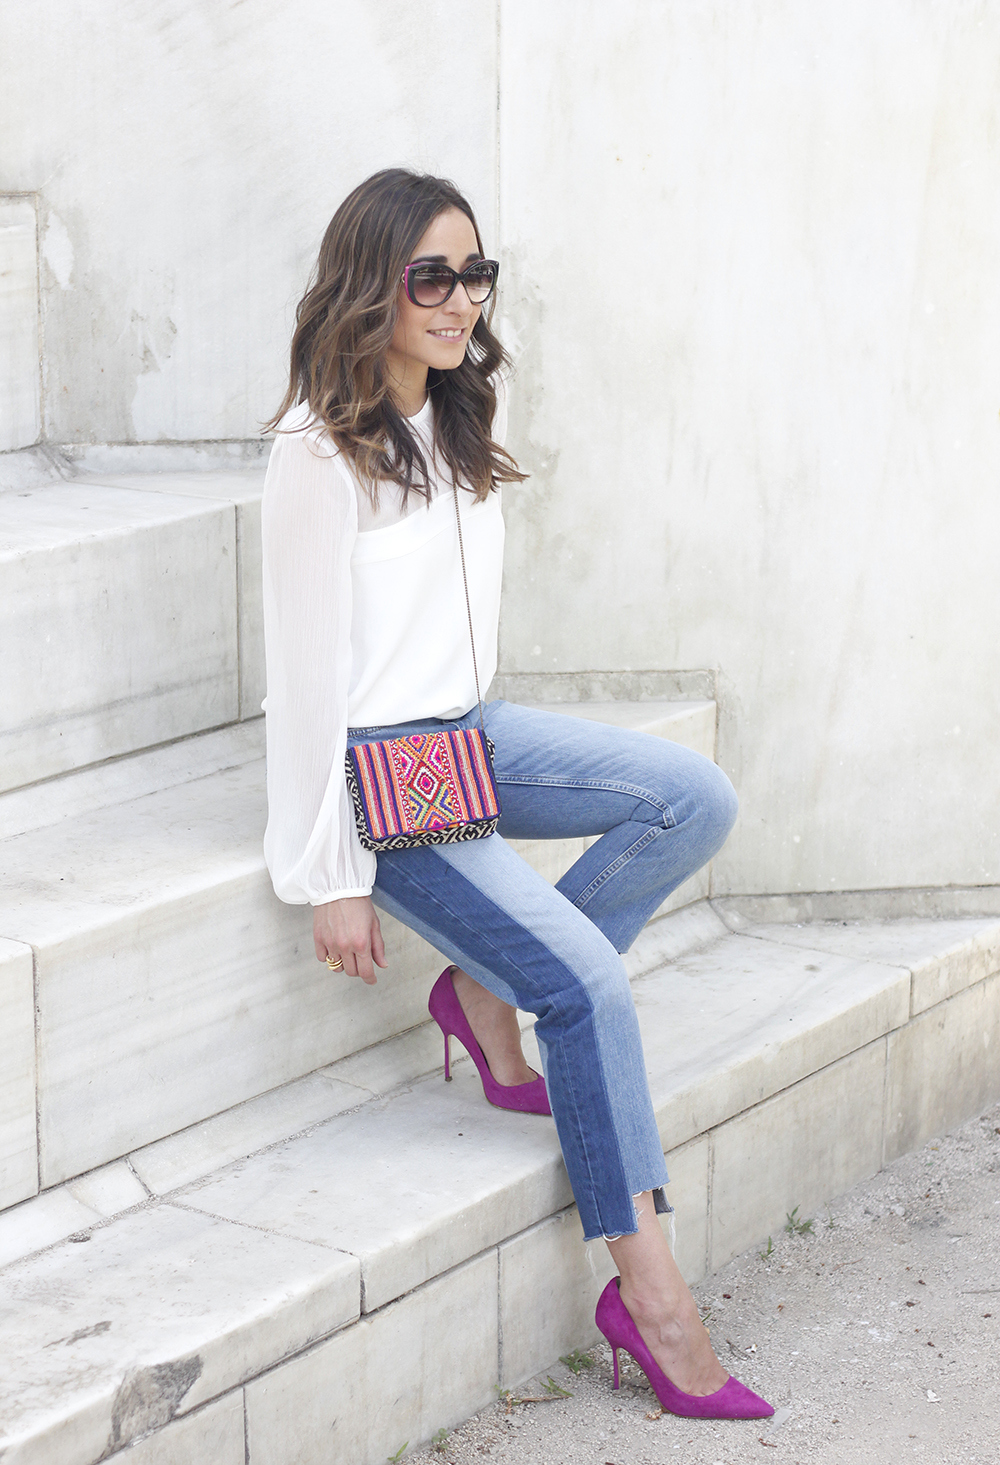 Boyfriend Jeans With Asymmetrical Hems white blouse carolina herrera heels daydaday bag outfit style streetstyle04